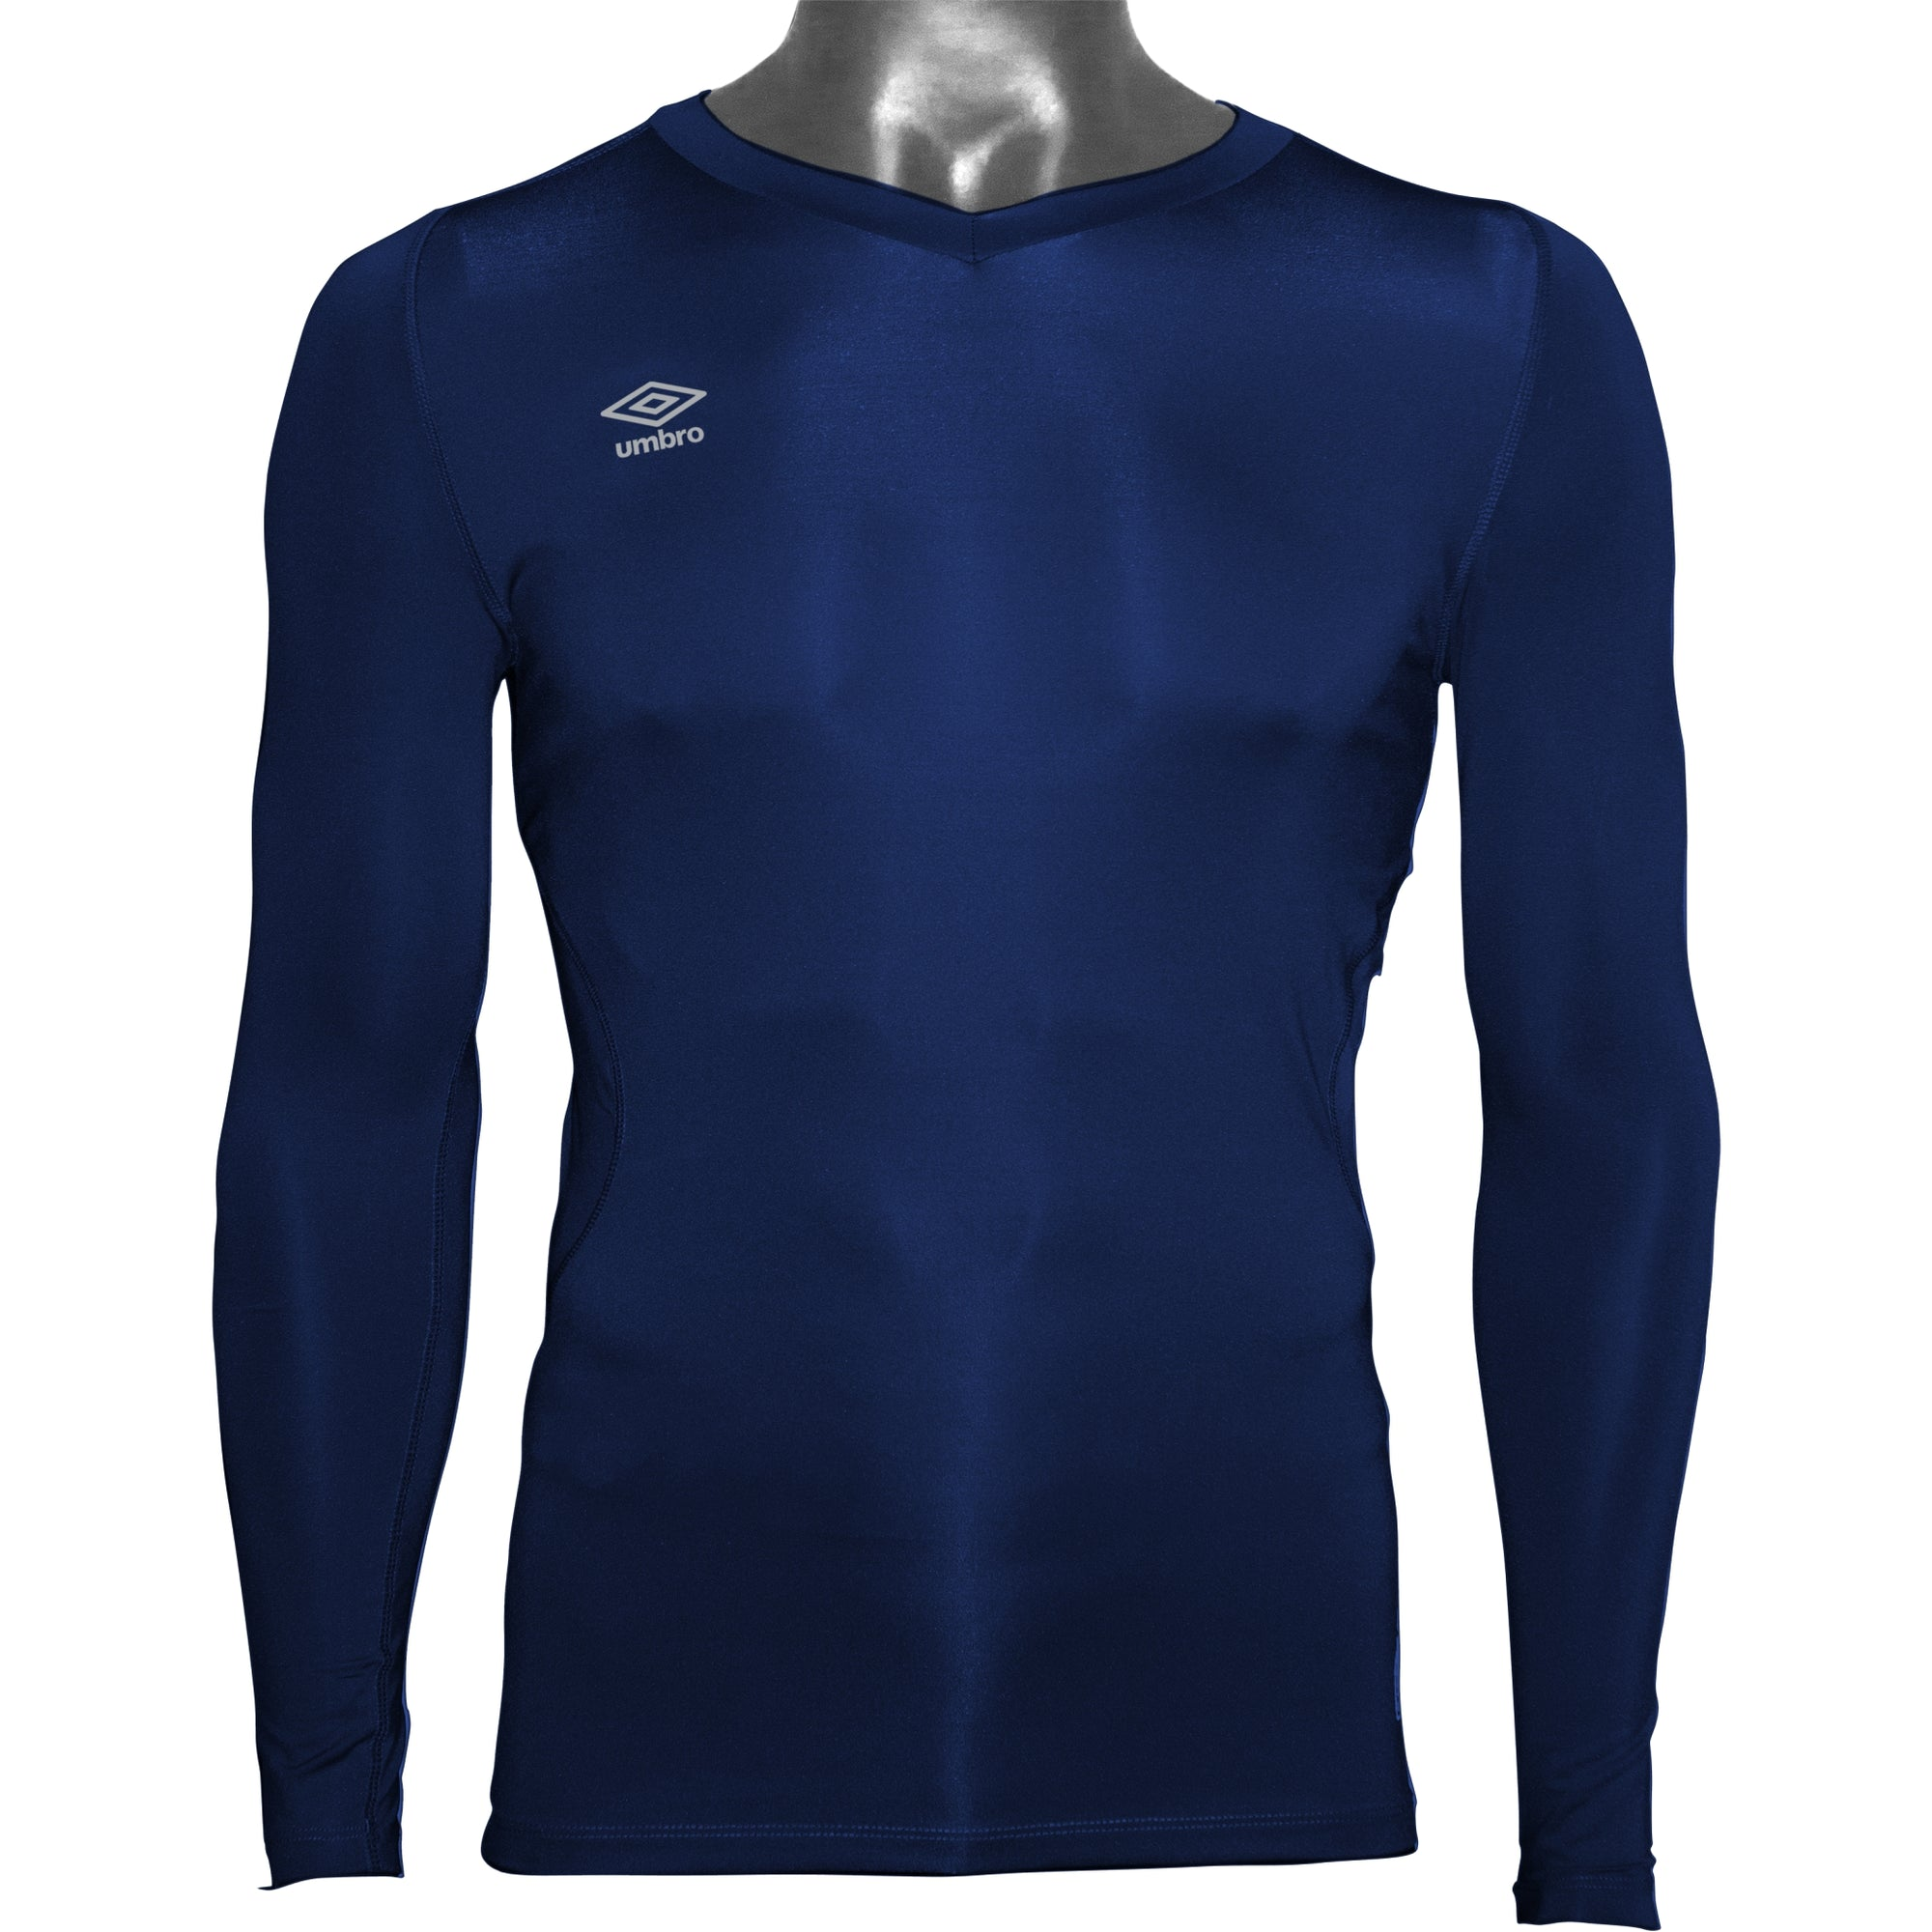 Umbro Elite V Neck baselayer in TW navy with reflective stacked diamond logo on right chest